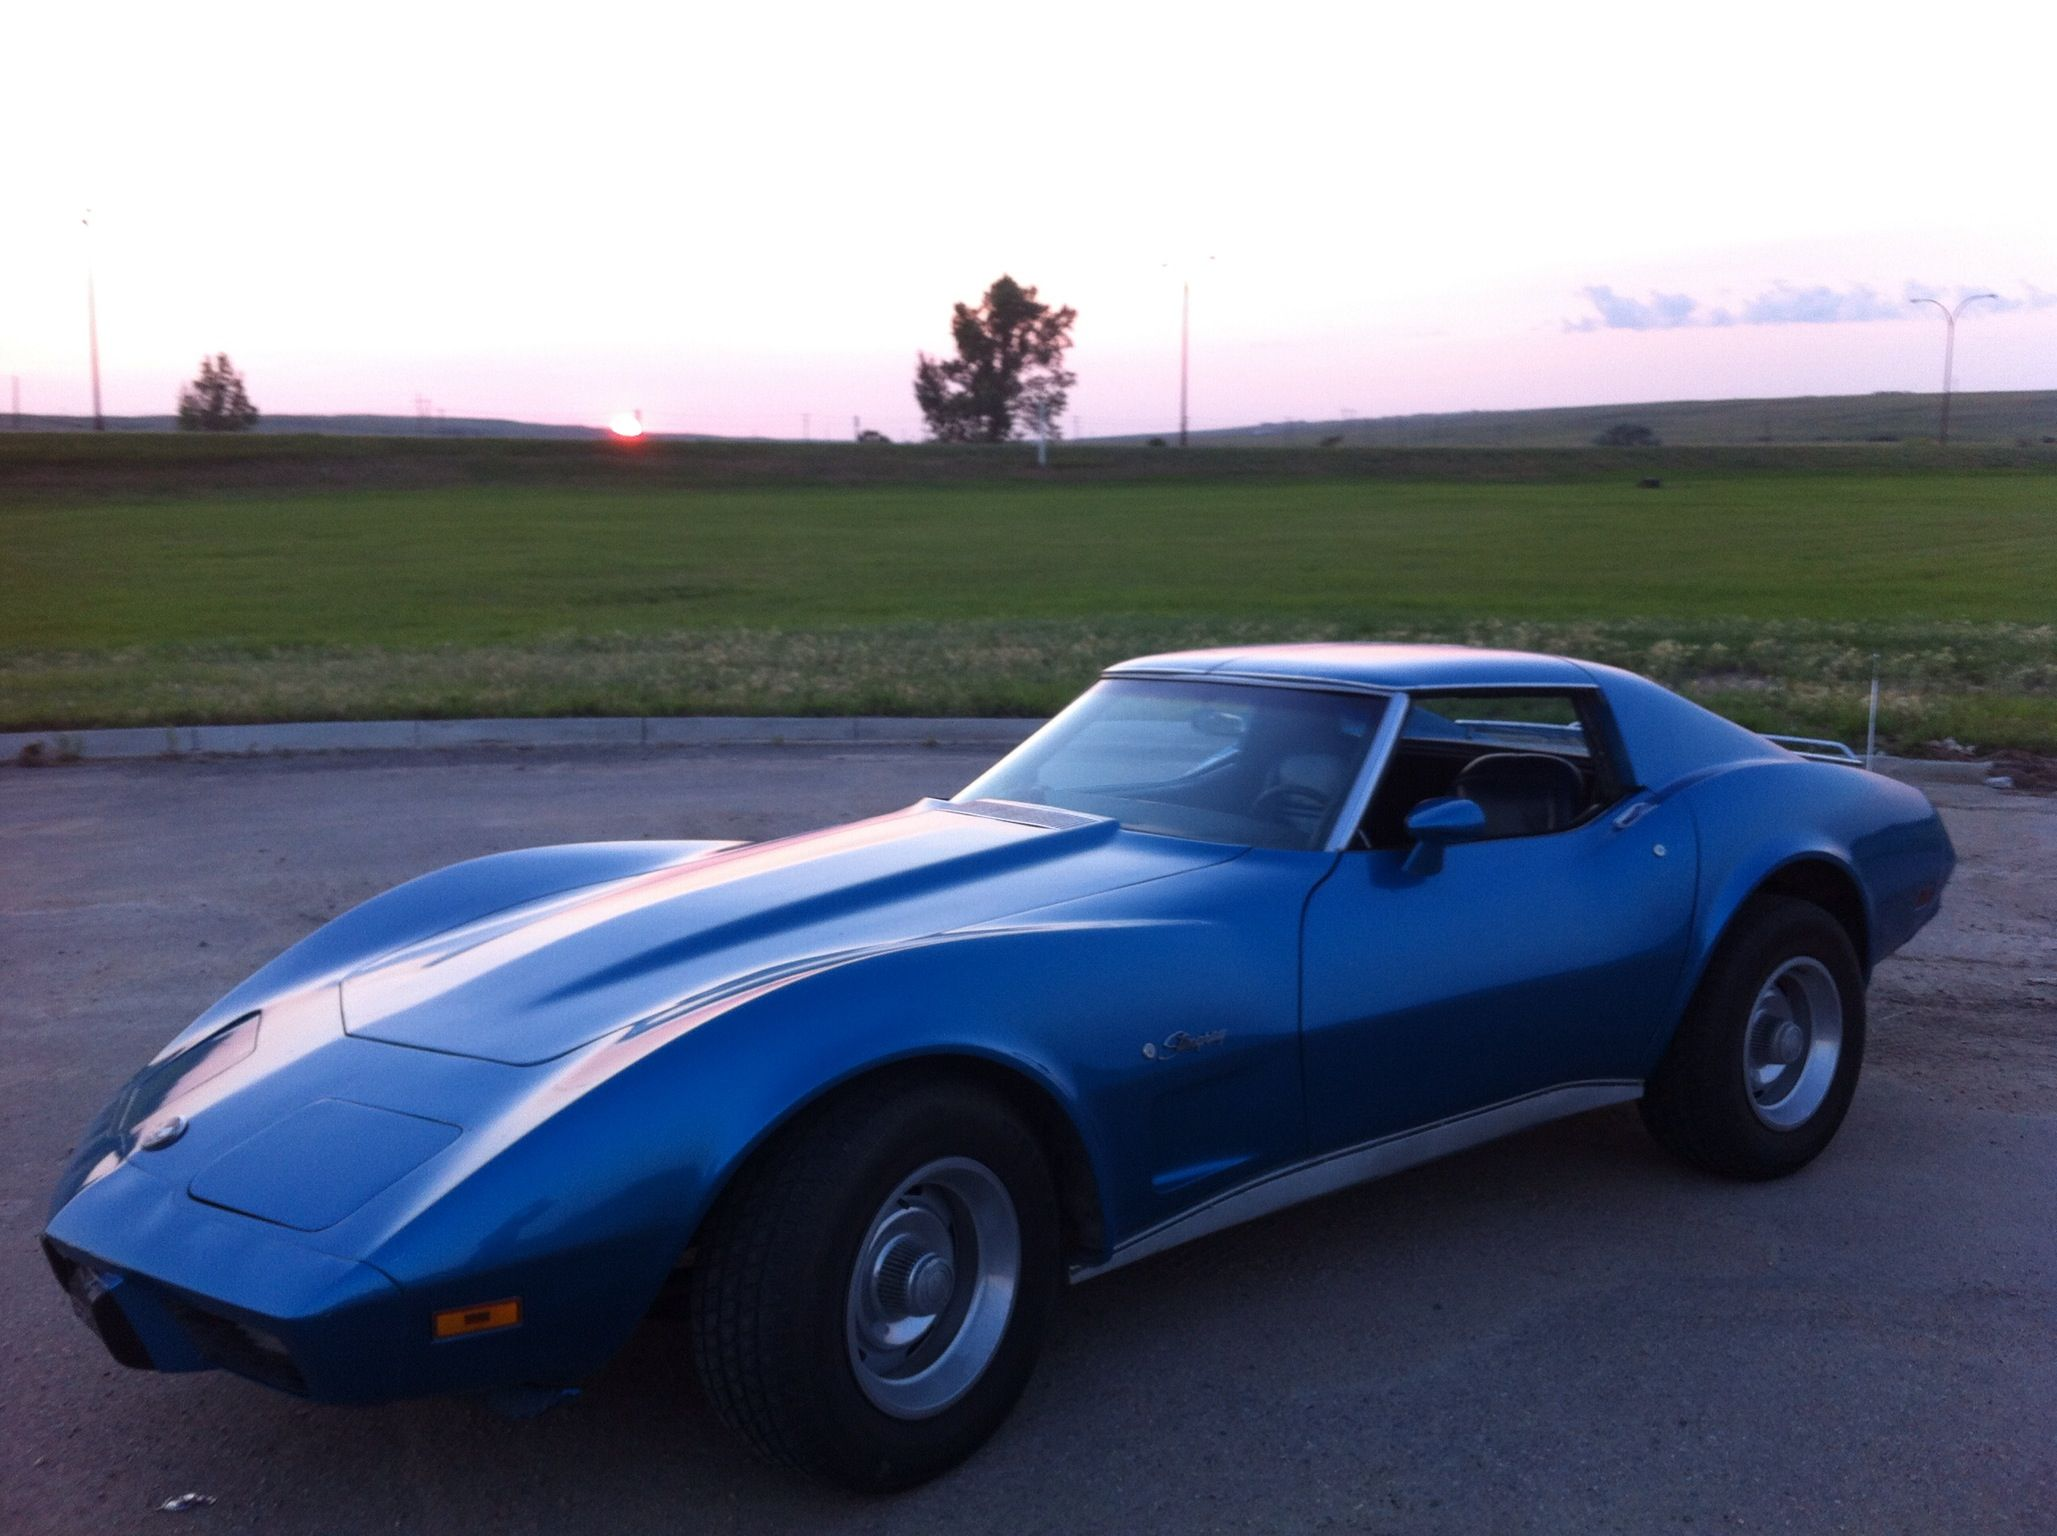 1975 corvette stingray corvette 39 s pinterest. Cars Review. Best American Auto & Cars Review